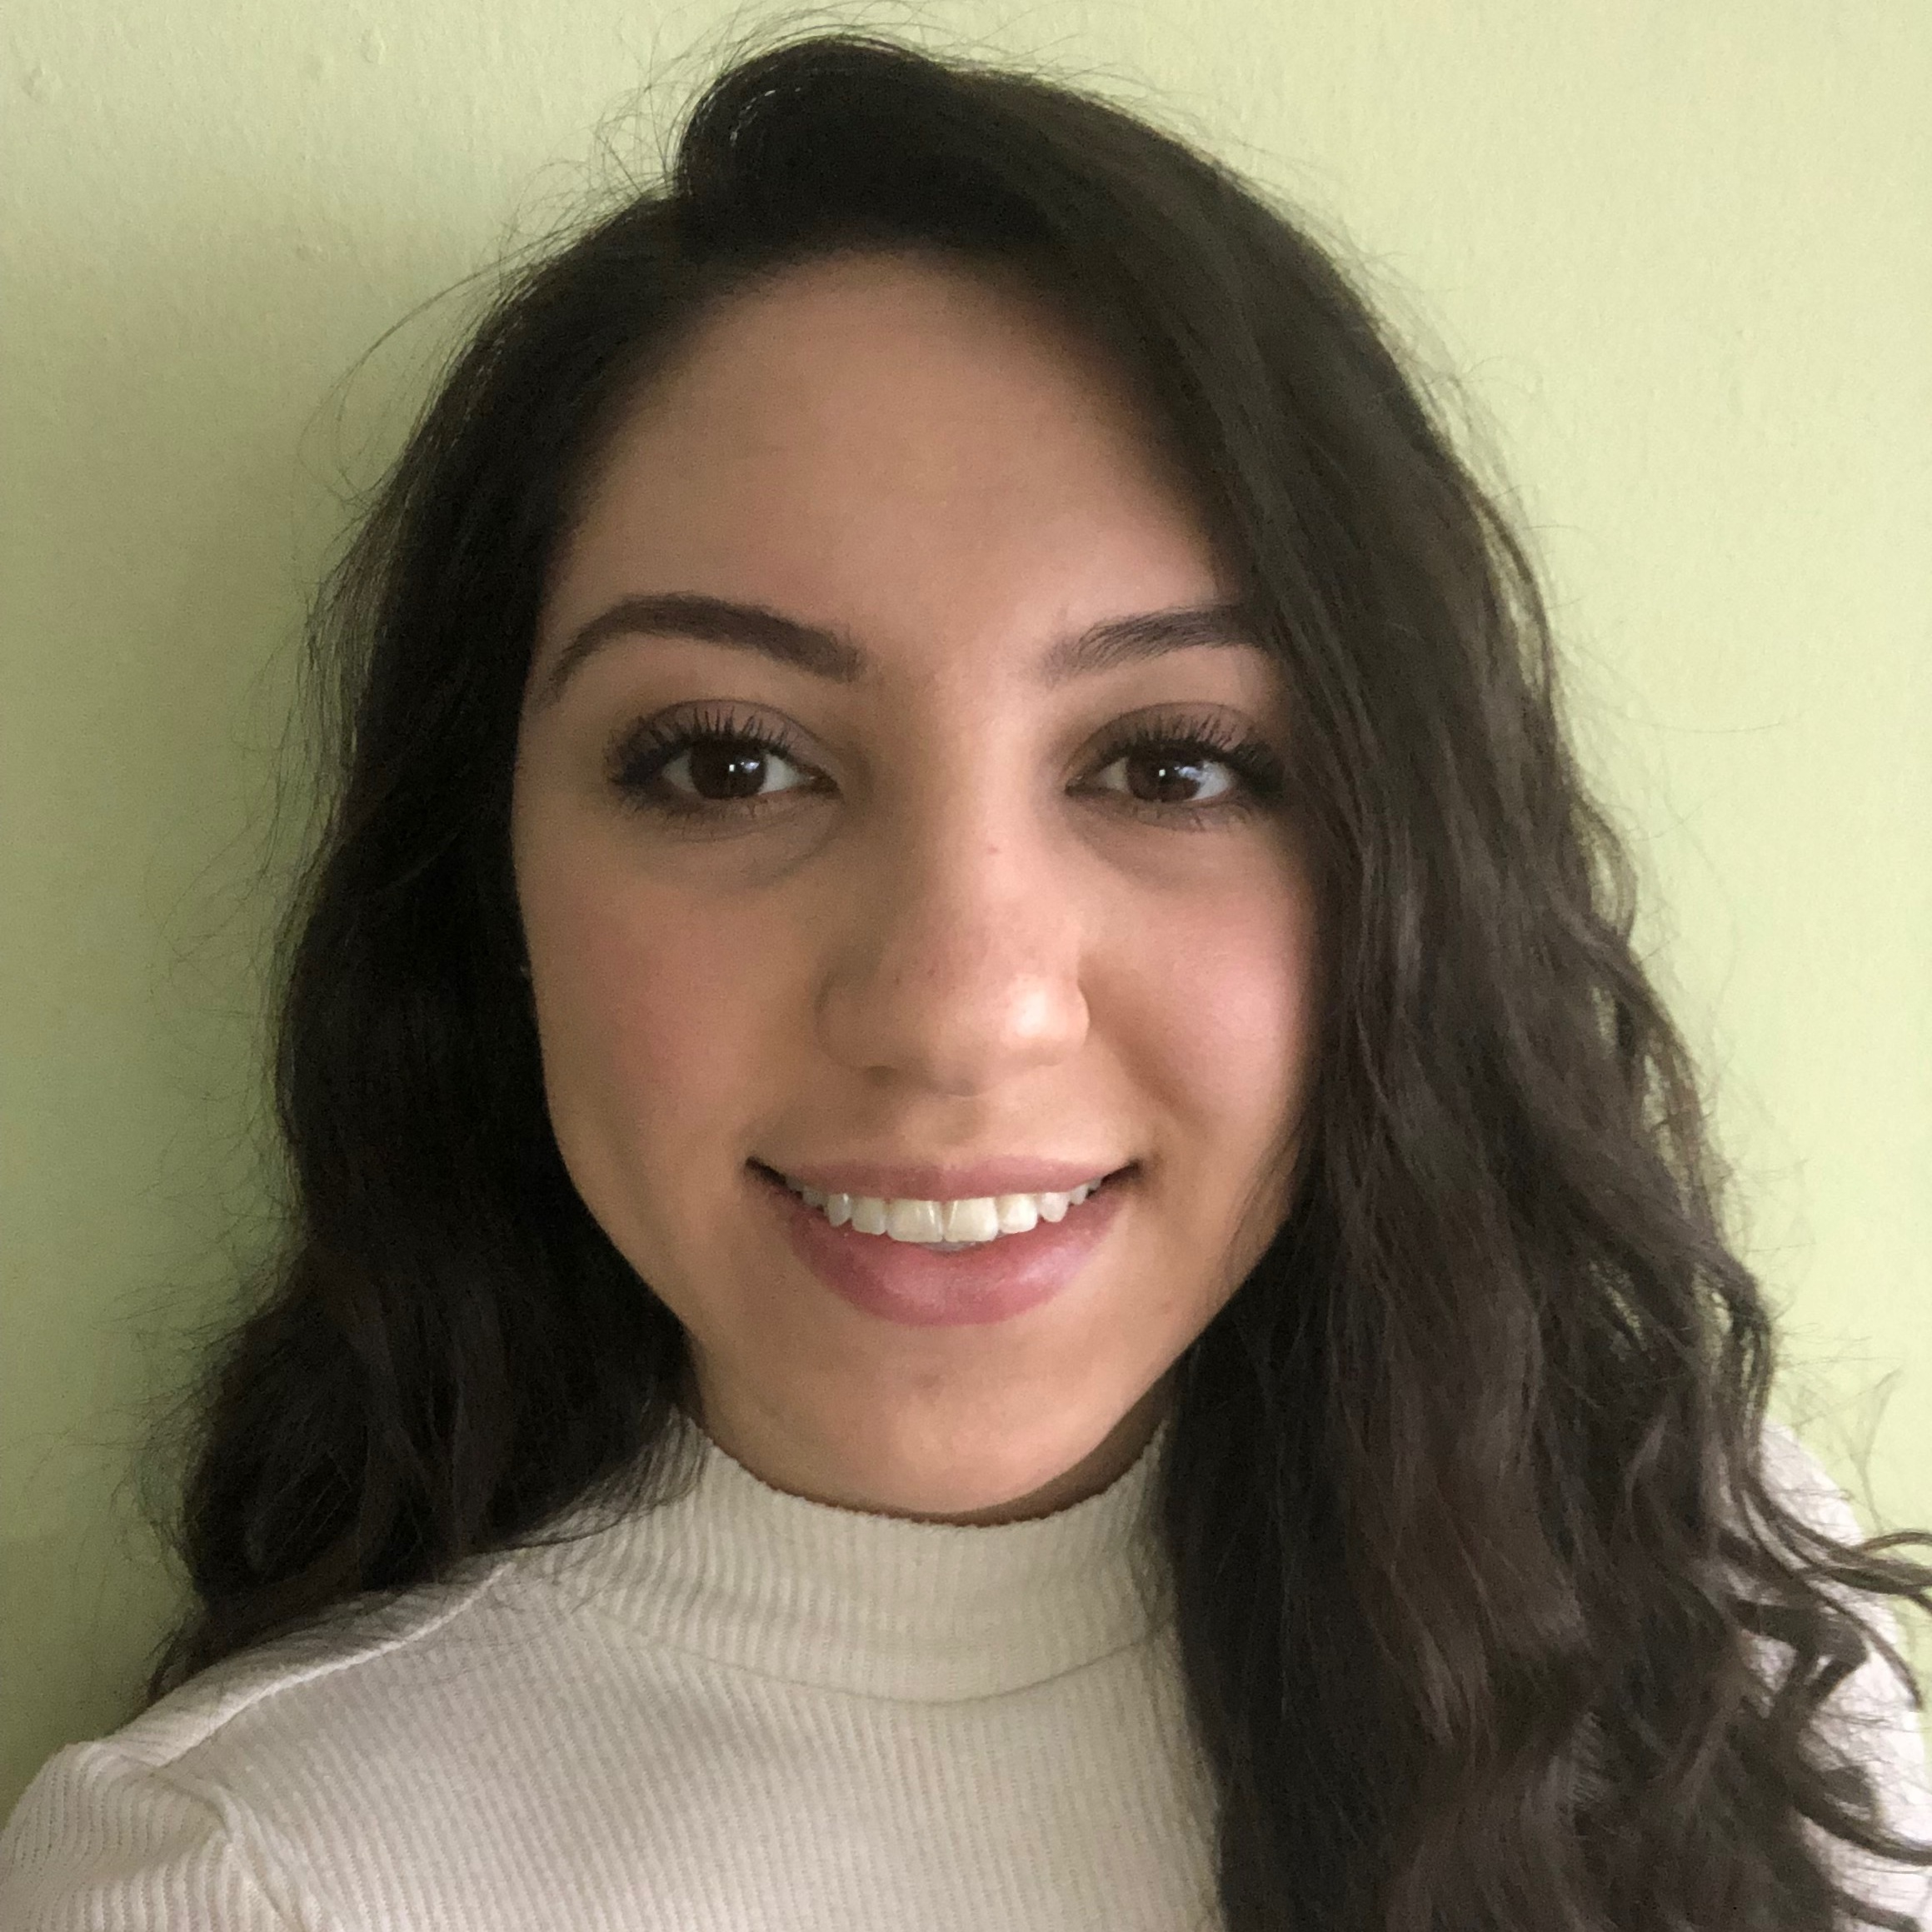 Georgina Yachouh - Georgina completed her Hons. B.Sc. in biology at York University in 2018. Her research interests include how one's emotional state affects their physical health.Being at the Family Psychology Centre, she has learned about emotion regulation and transformation strategies through the use of Emotion-Focused Therapy. Additionally, she has seen the importance of a caregiver's support in the recovery of one's mental health.Her primary role with the Family Psychology Centre is in organizing the popular two-day Emotion-Focused Family Therapy workshops, where she is involved in caregiver registration and data collection and entry. Being a research assistant at the the Family Psychology Centre has proved to be a very rewarding experience, filled with many learning opportunities.